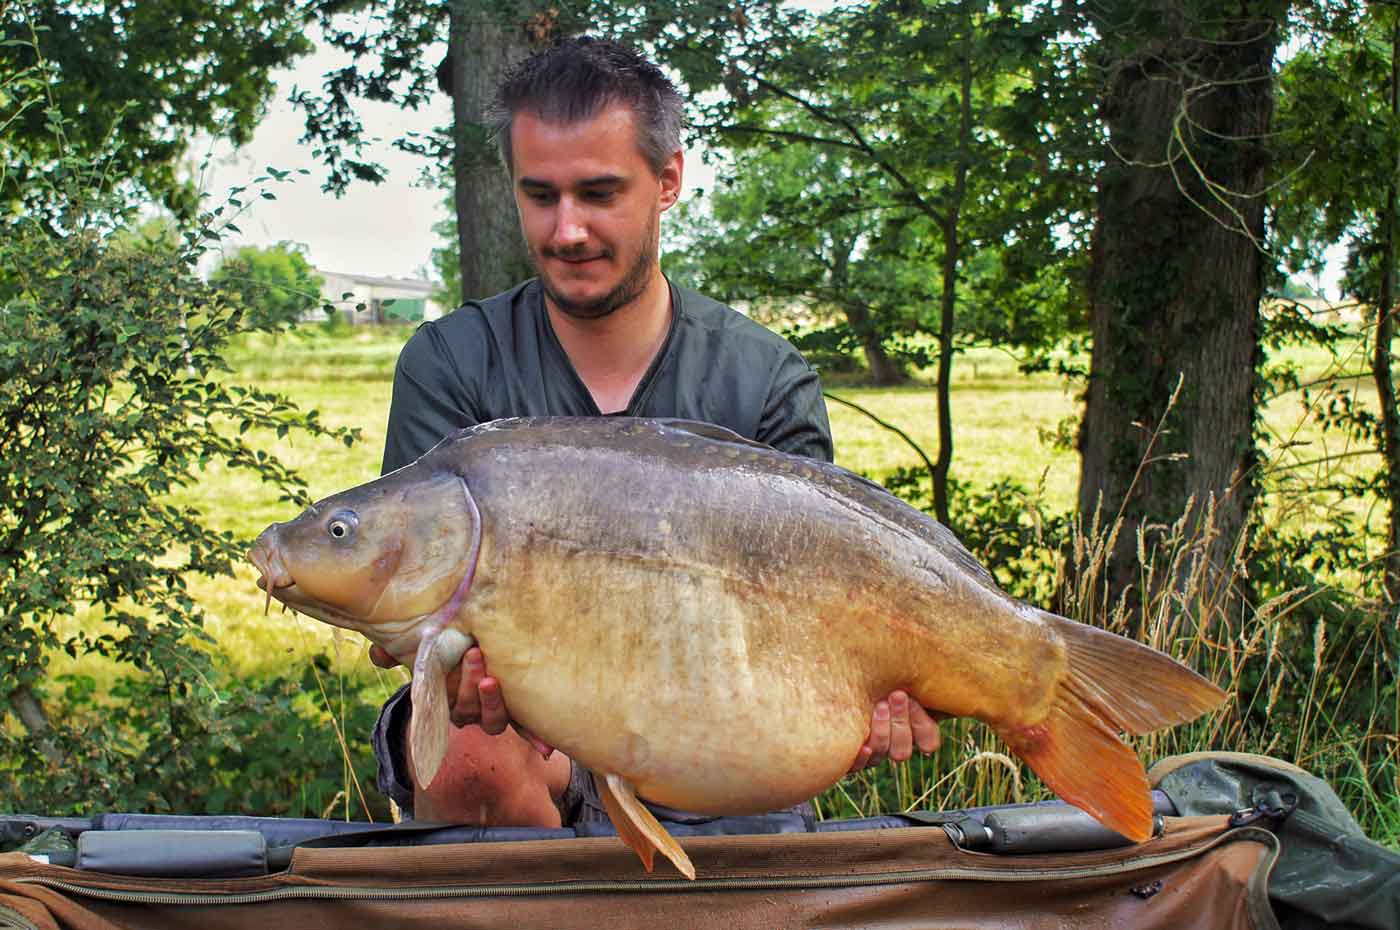 angler luke on a french carp holiday with a 37 pound carp